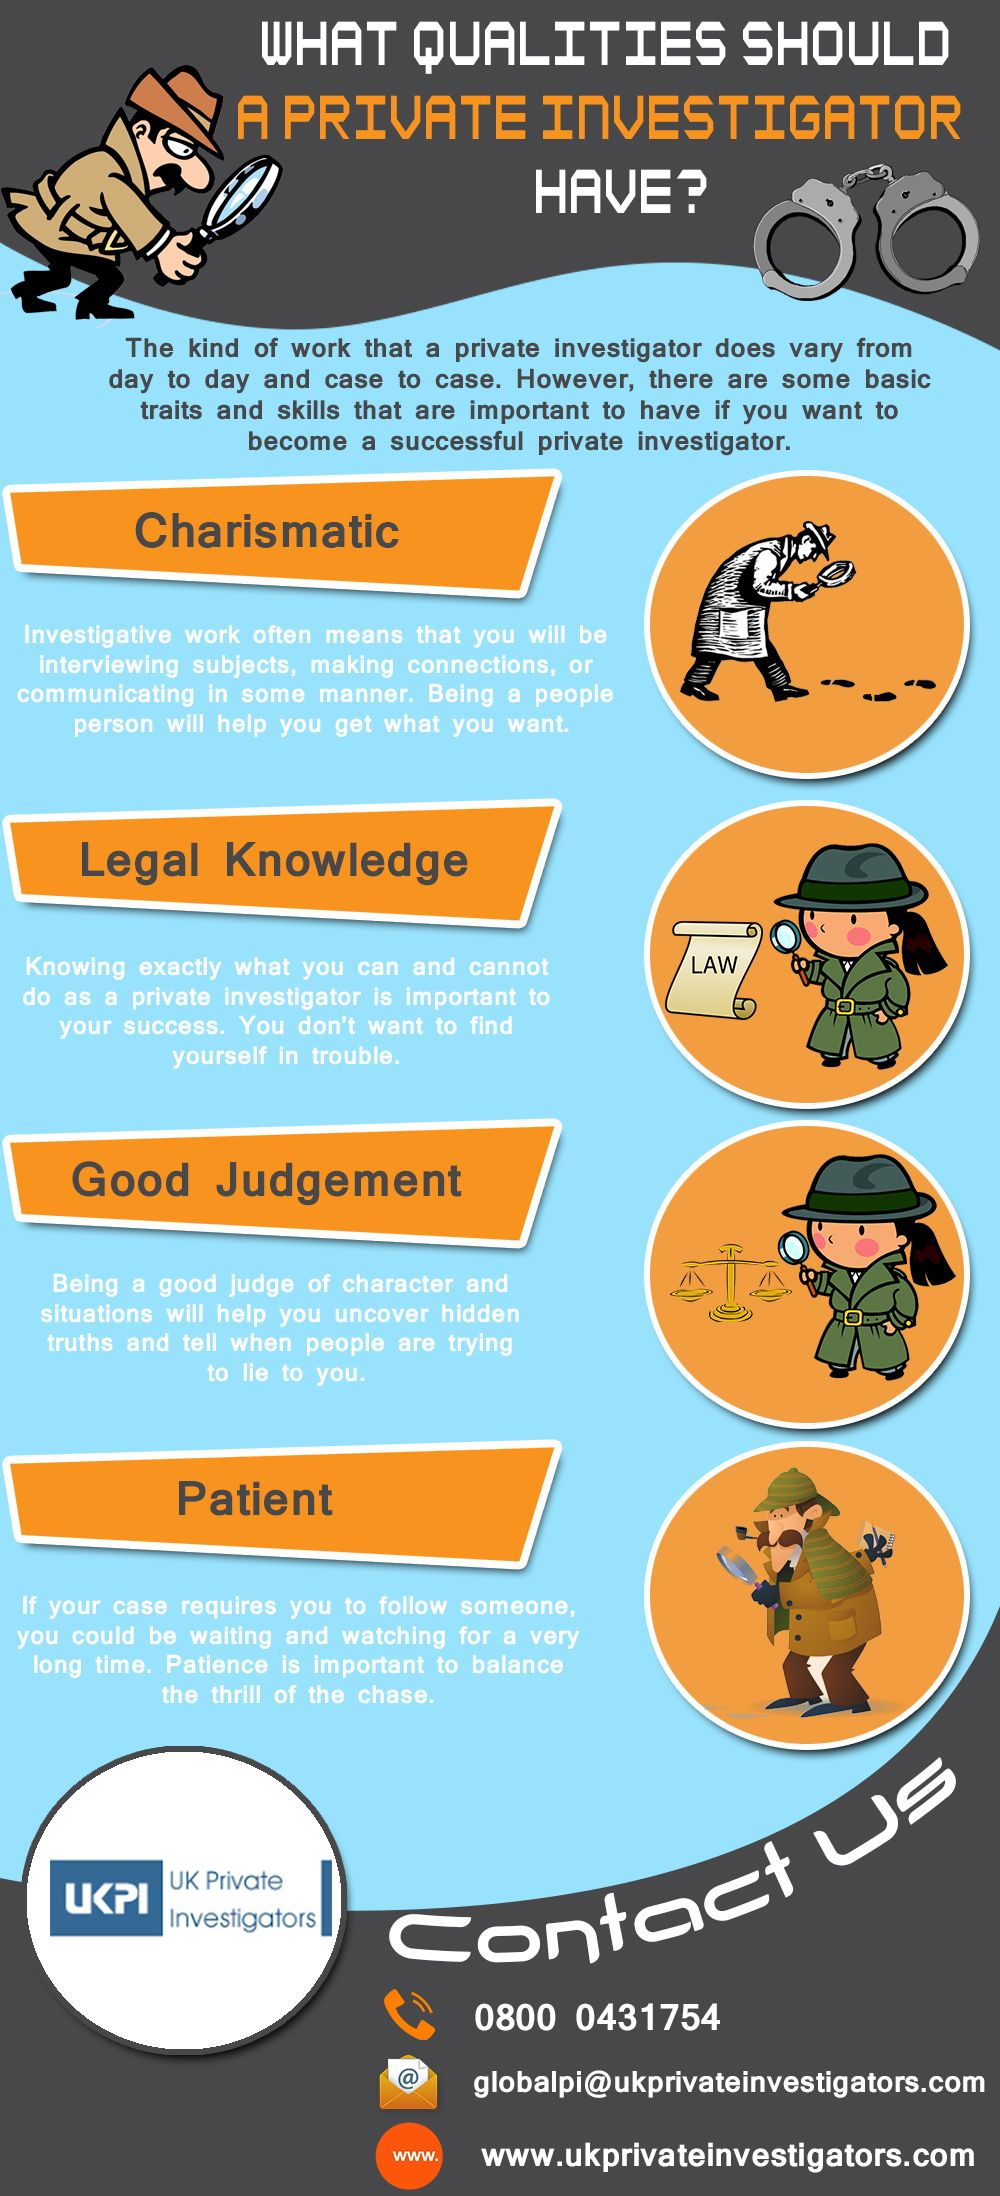 What Qualities Should a Private Investigator Have ...